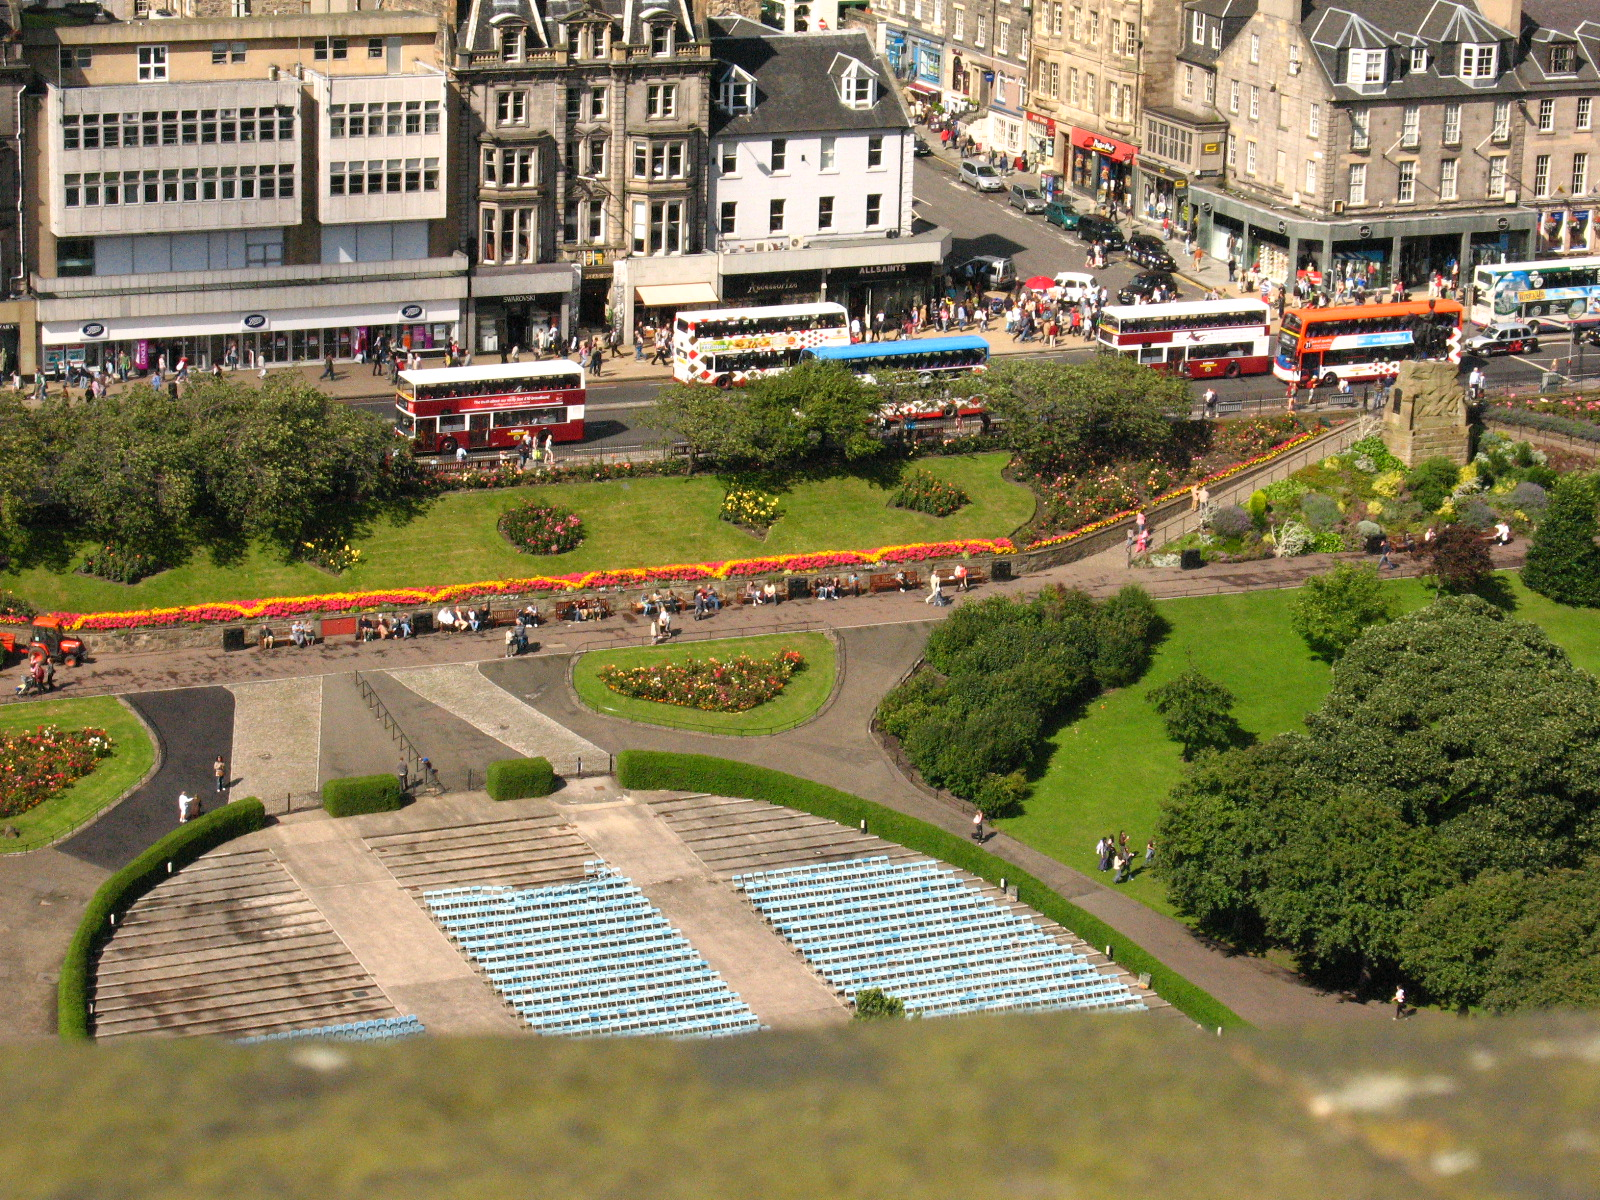 Princes Street, as seen from the crenelations of Edinburgh Castle, has been named Princes Street since the 18th century